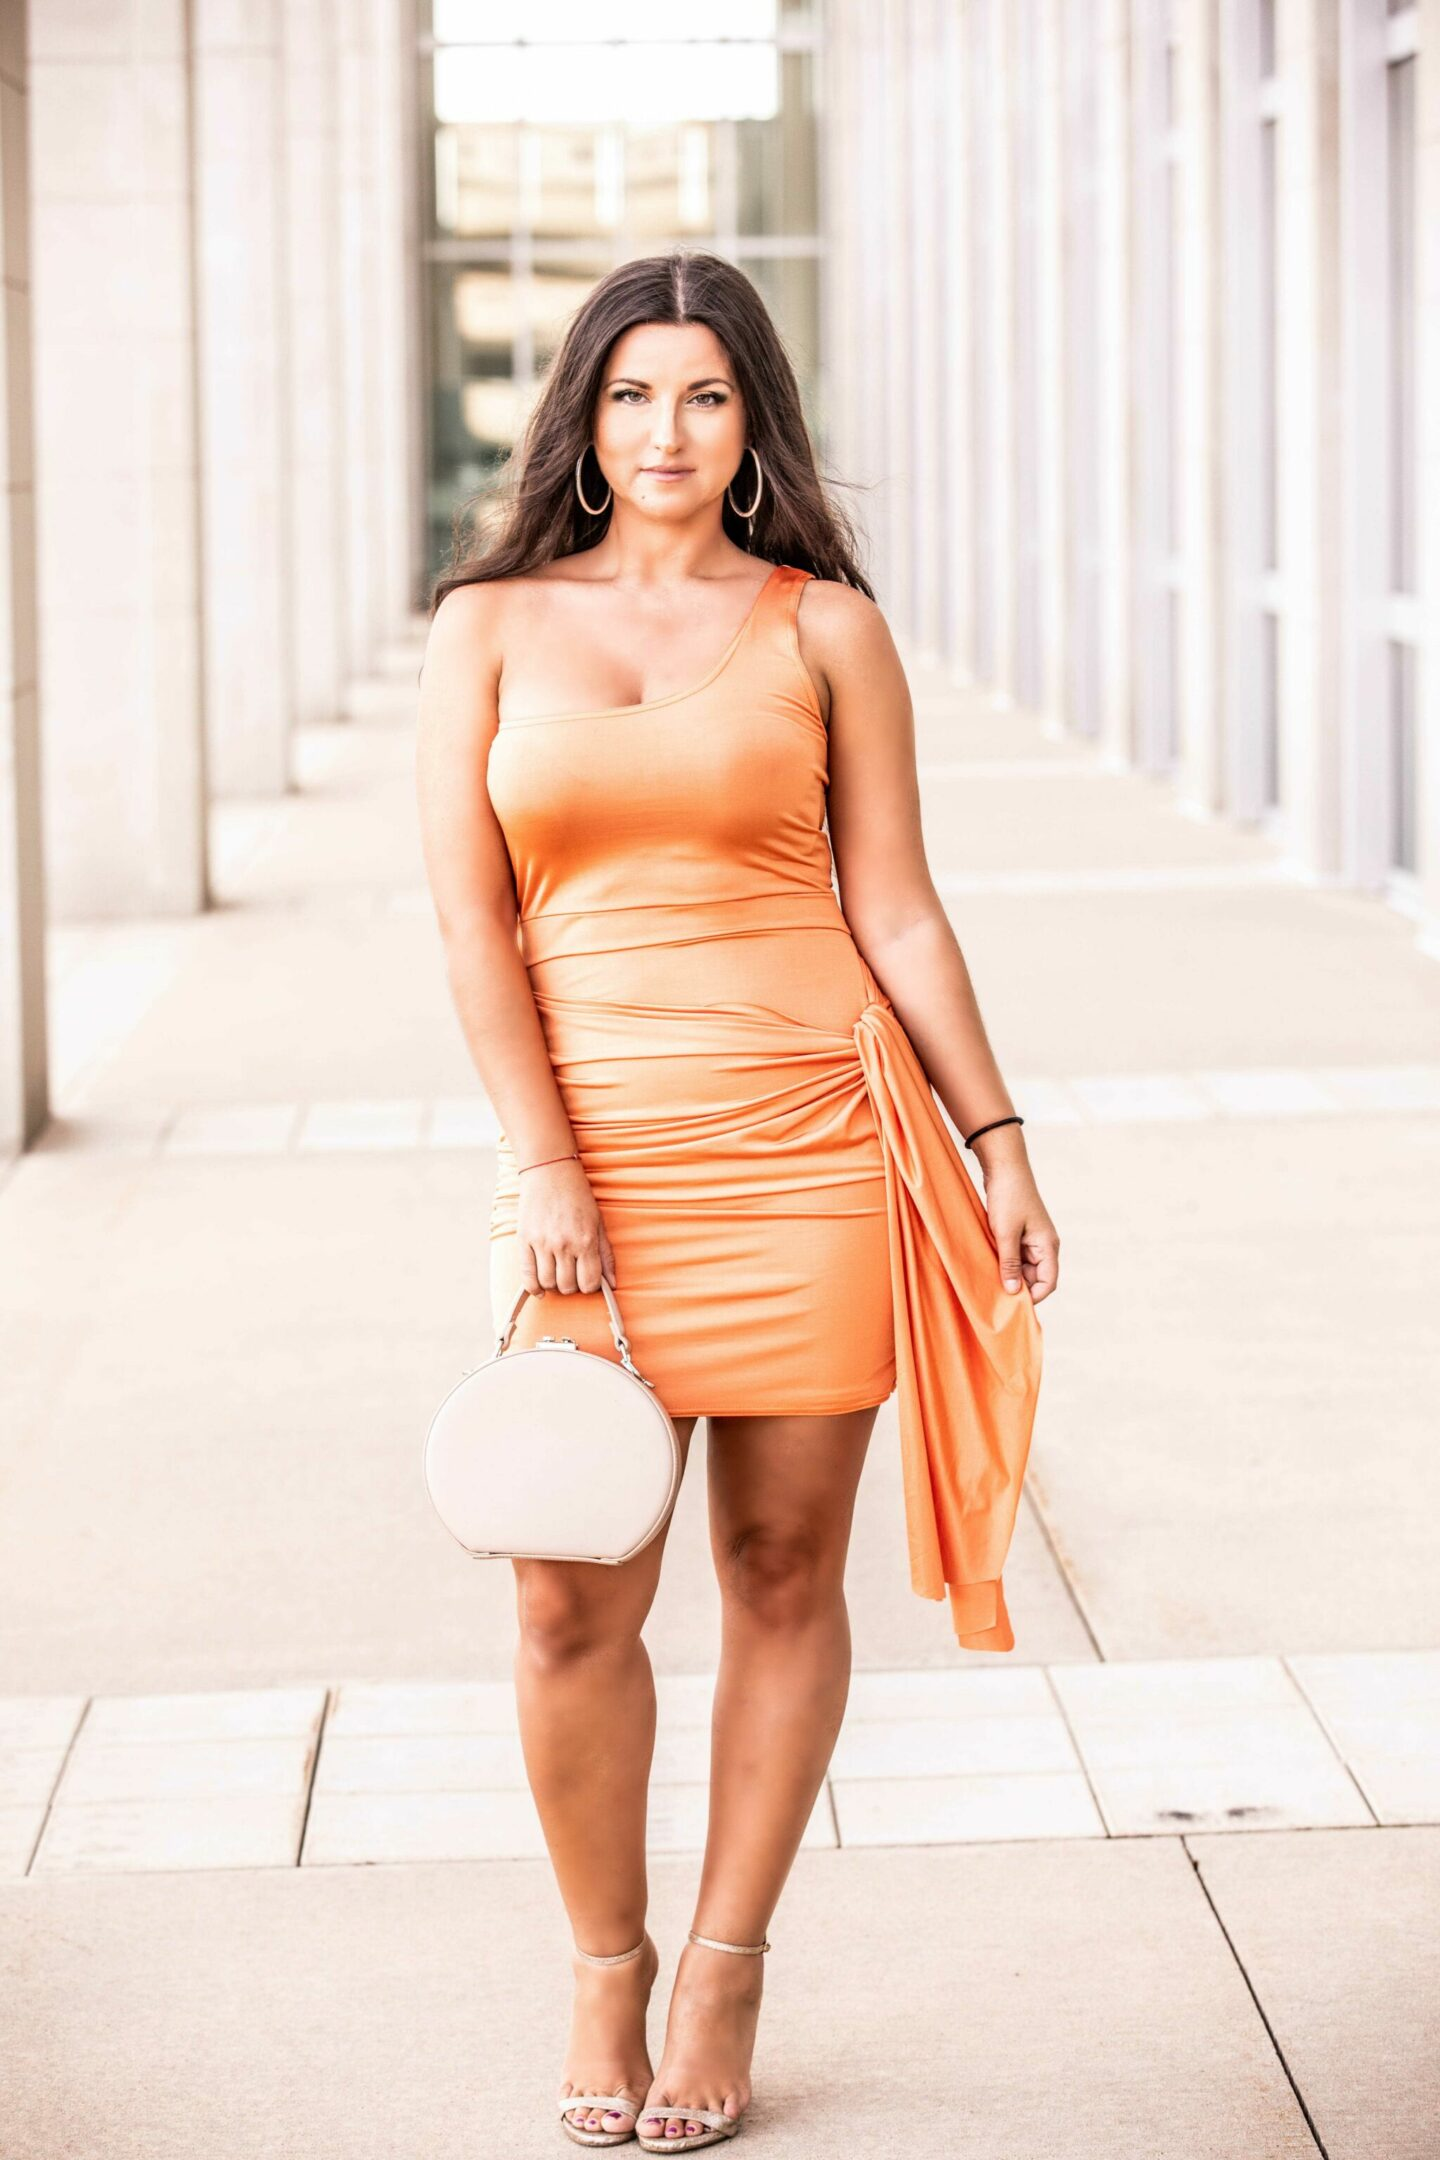 best place to shop for dresses, chicago fashion, baily lamb, chicago women's dresses